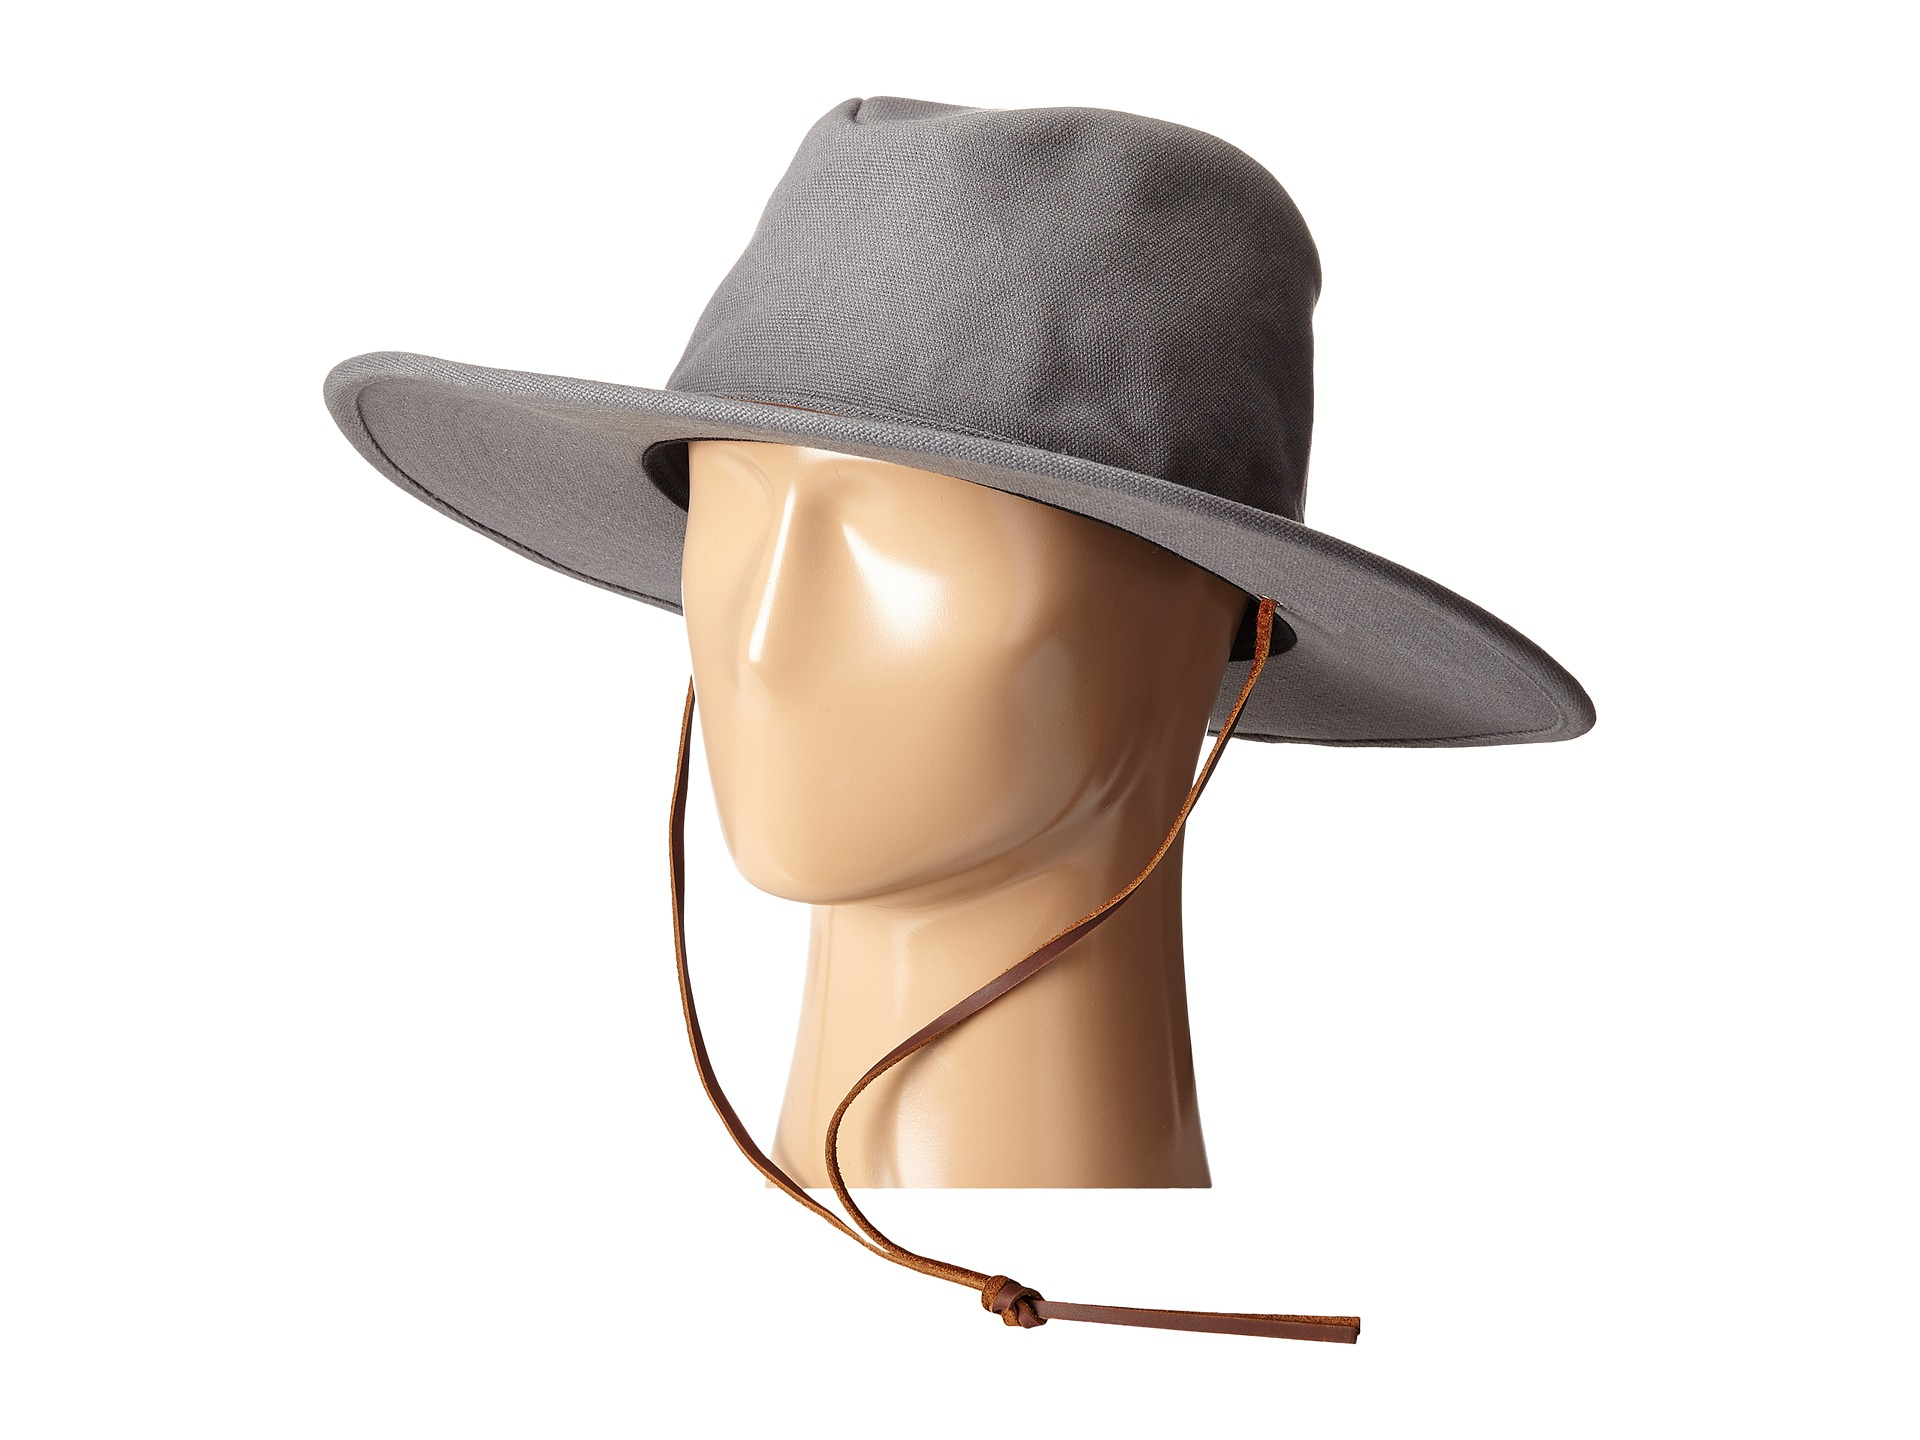 04871bf7ff234 ... order lyst brixton ranger ii hat in gray for men a7ab8 4de61